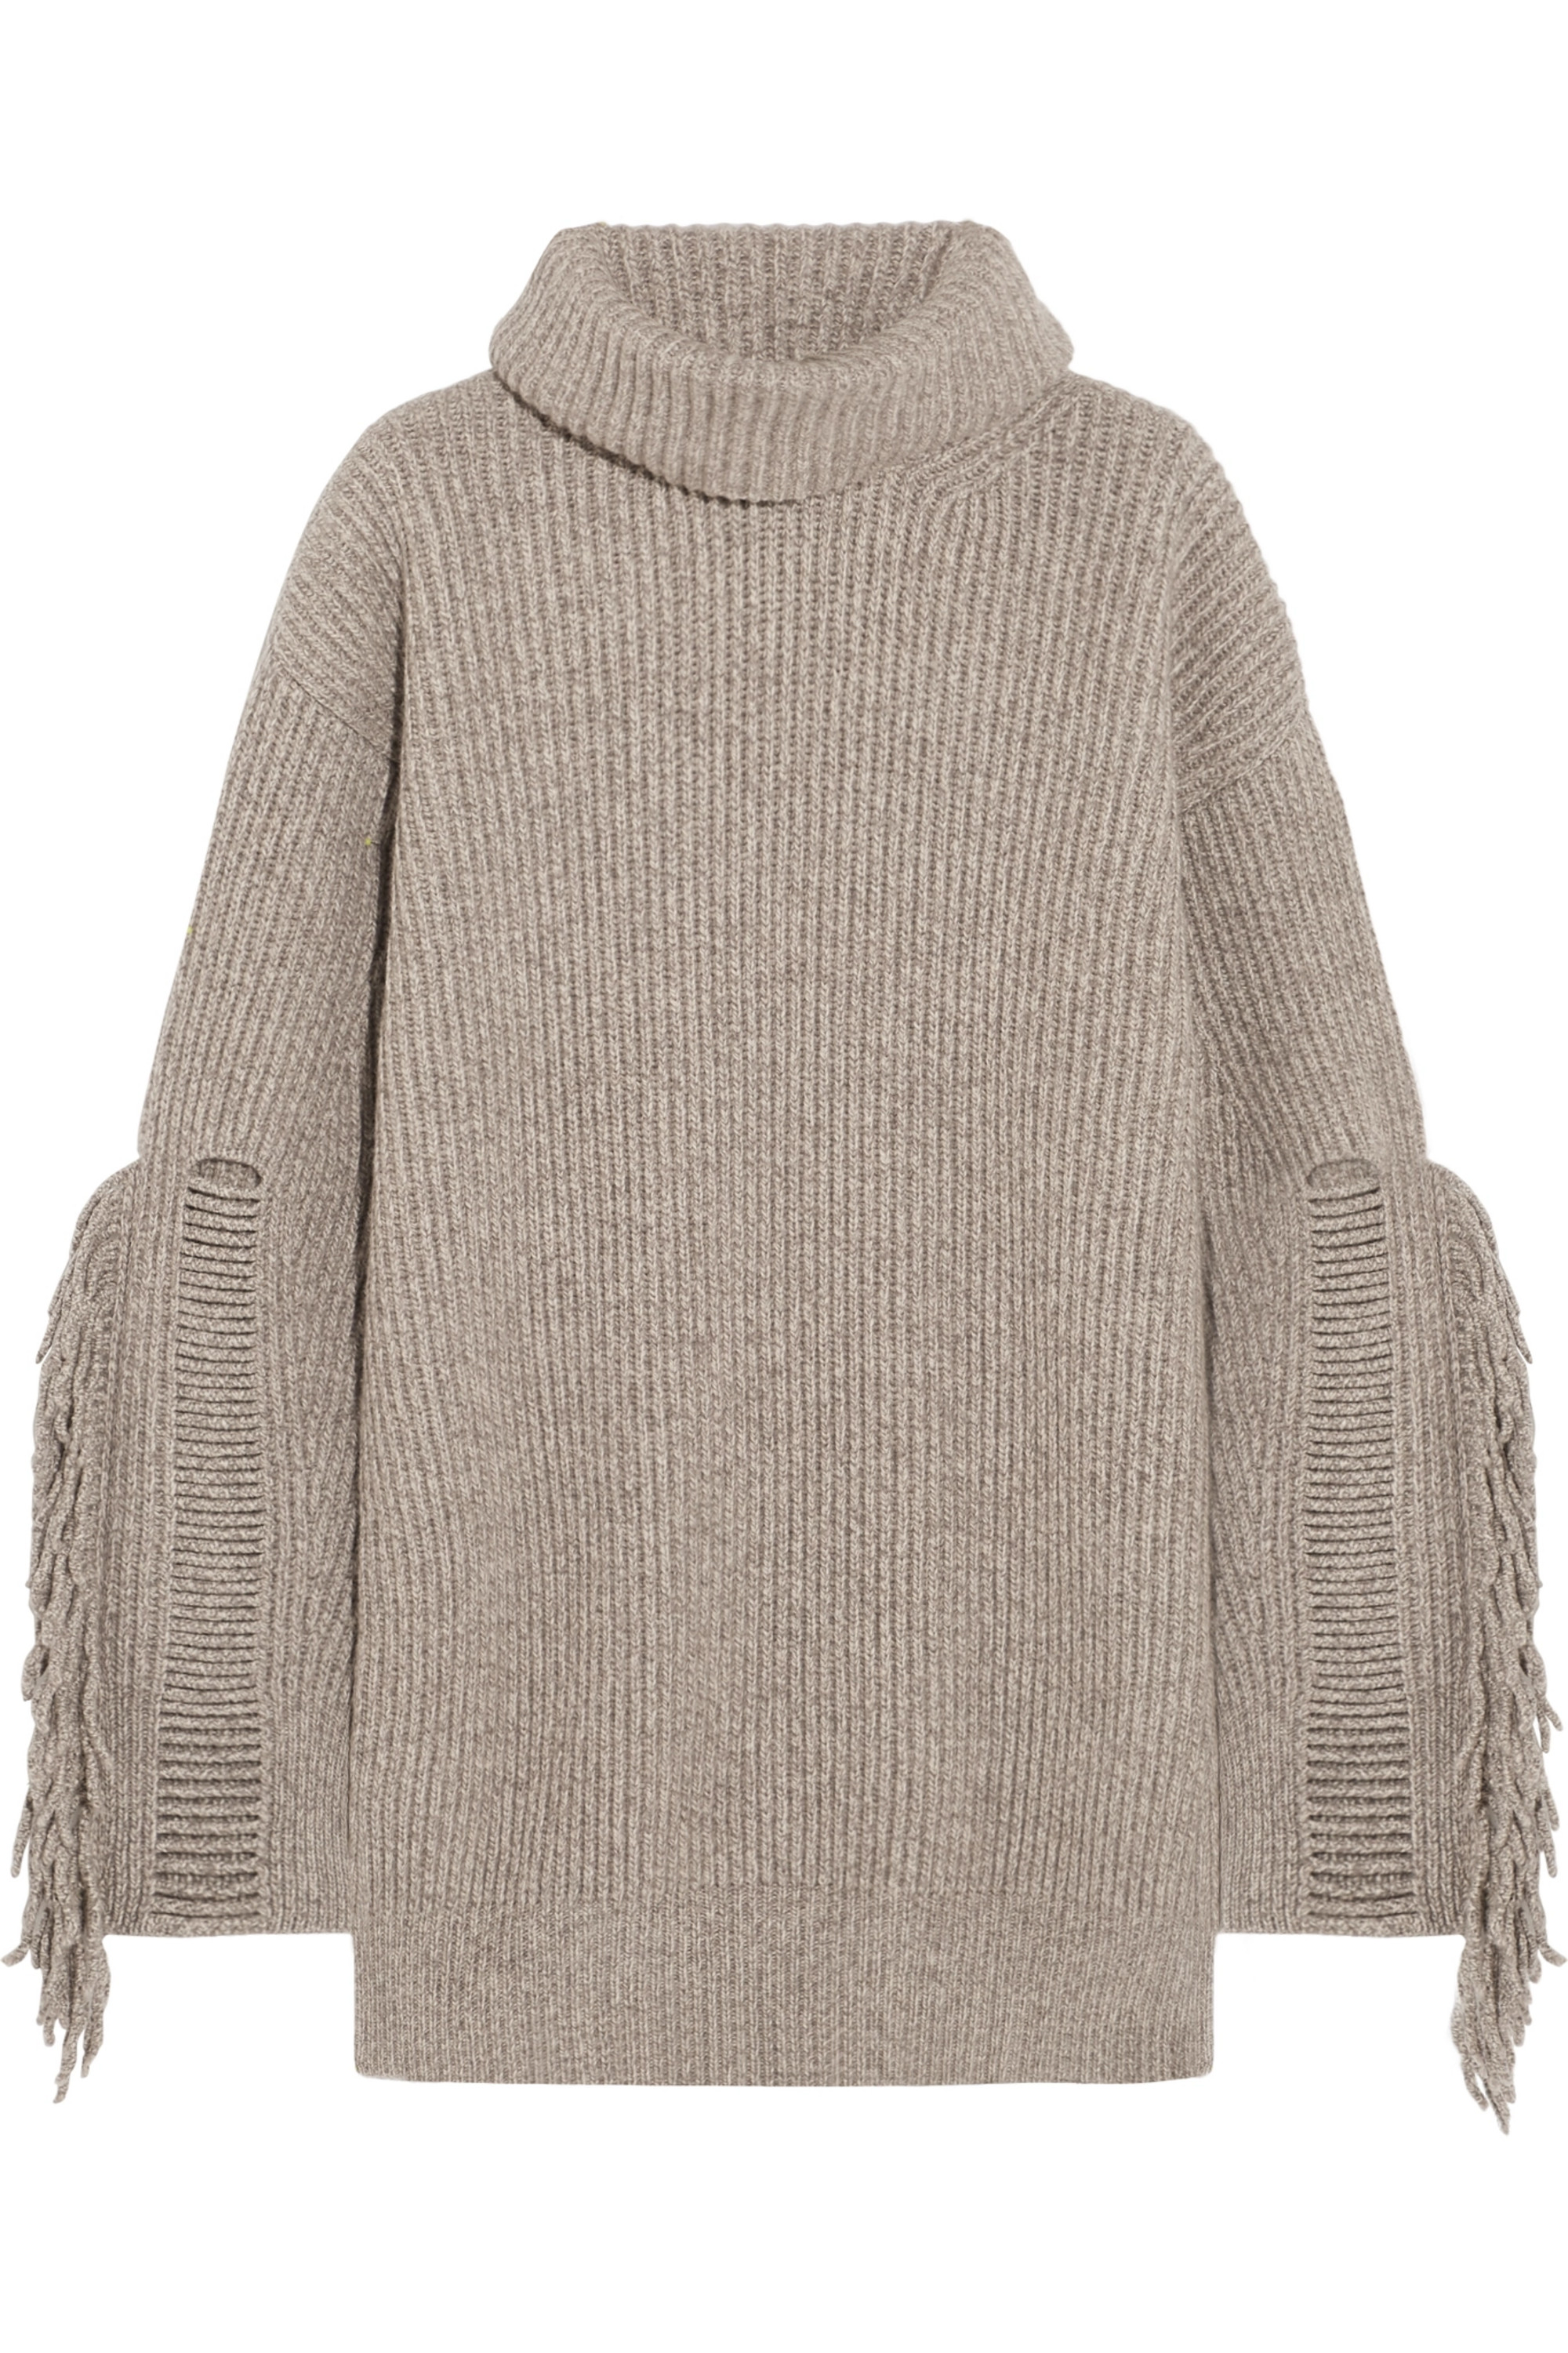 Stella McCartney Fringed ribbed cashmere and wool-blend turtleneck sweater